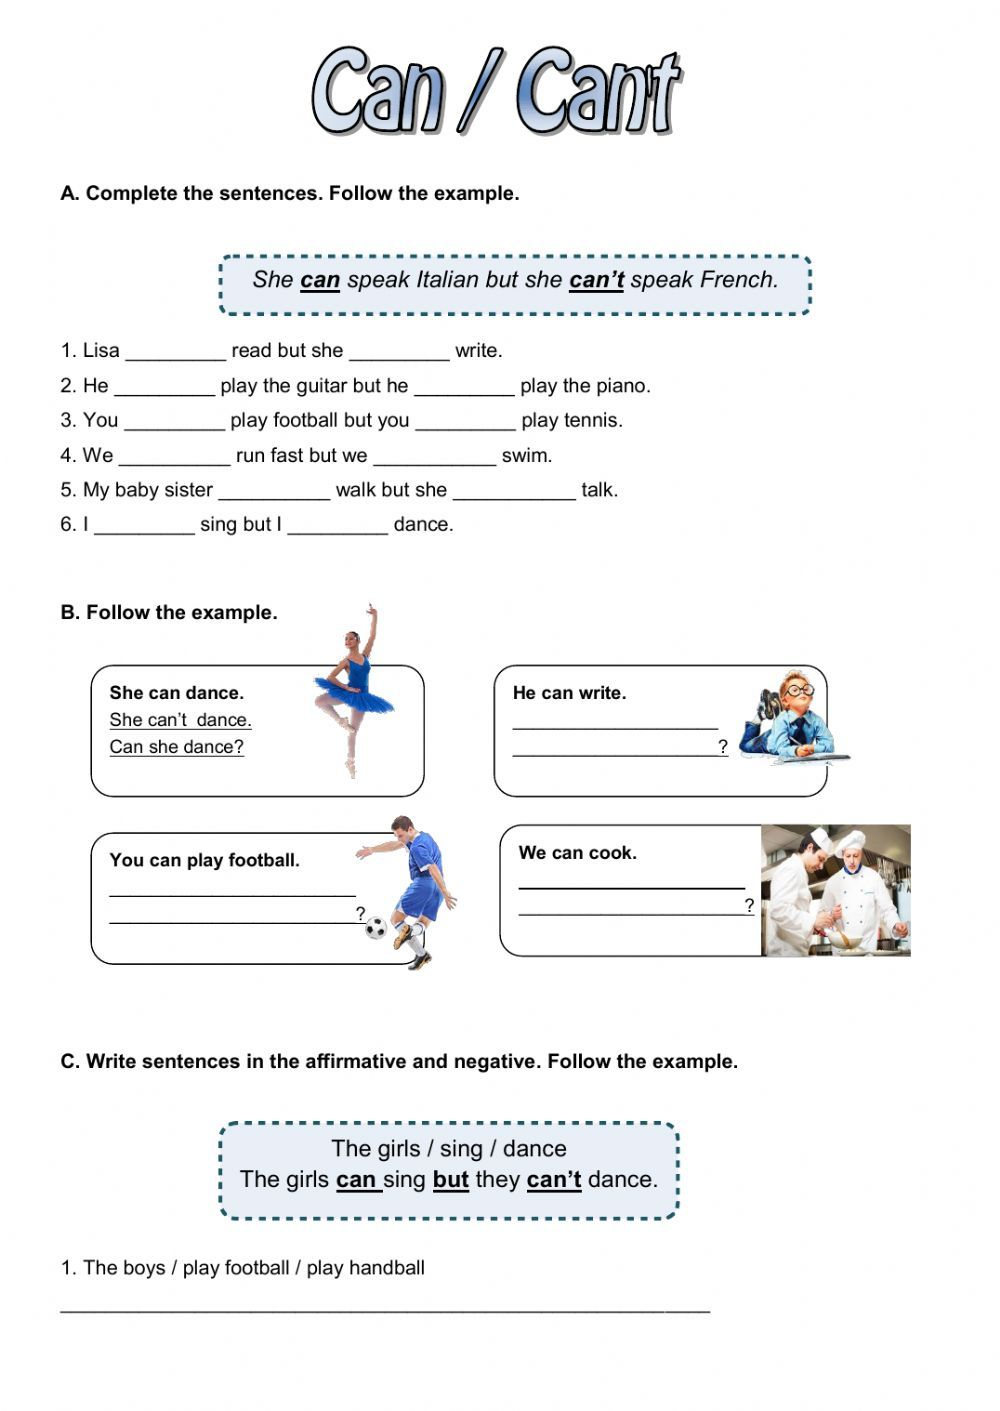 Modal Verbs Interactive And Downloadable Worksheet You Can Do The Exercises Online Or Download The English Writing Skills Grammar Lessons How To Speak French [ 1411 x 1000 Pixel ]